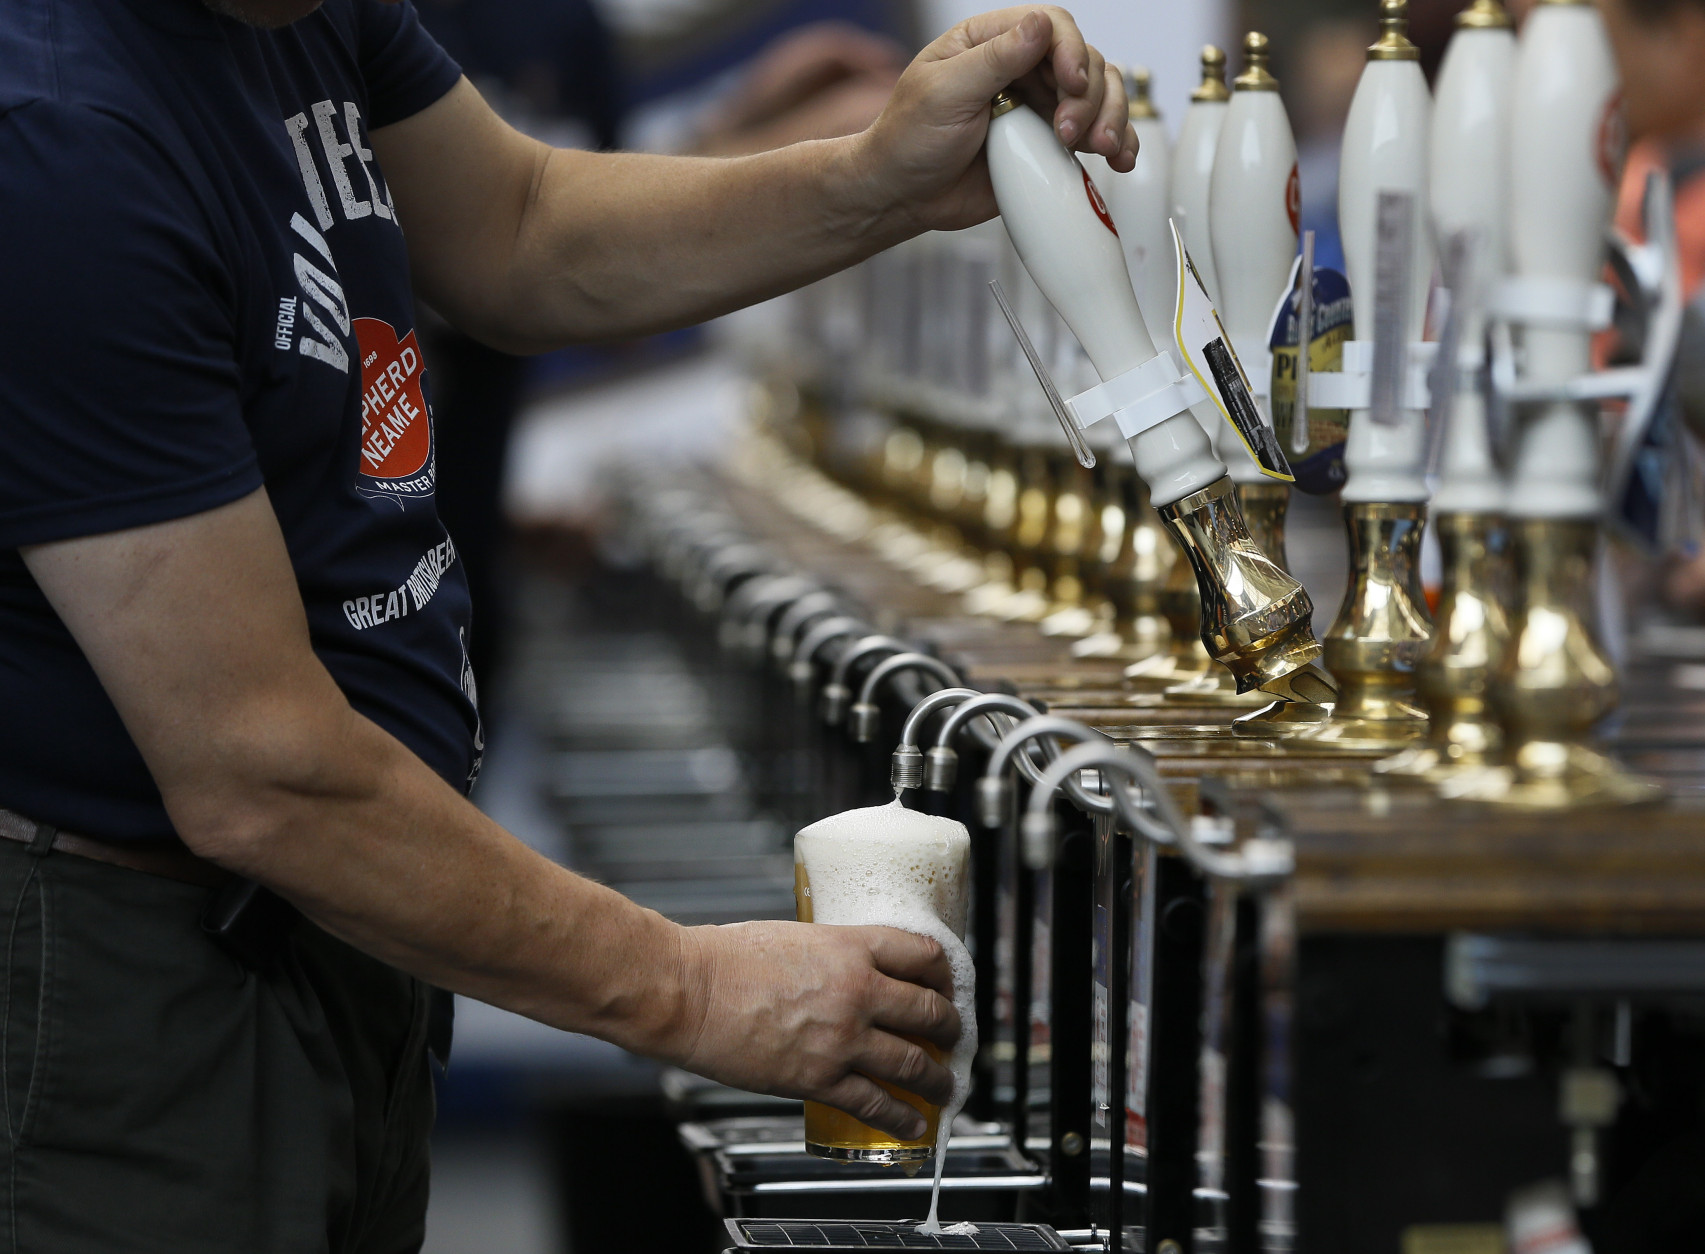 A pint of beer is poured at the Great British Beer Festival, at Olympia in London, Tuesday, Aug. 11, 2015. The five day event is organised by the Campaign for Real Ale (CAMRA), with over 900 real ales, ciders, perries and international beers on offer.  (AP Photo/Kirsty Wigglesworth)